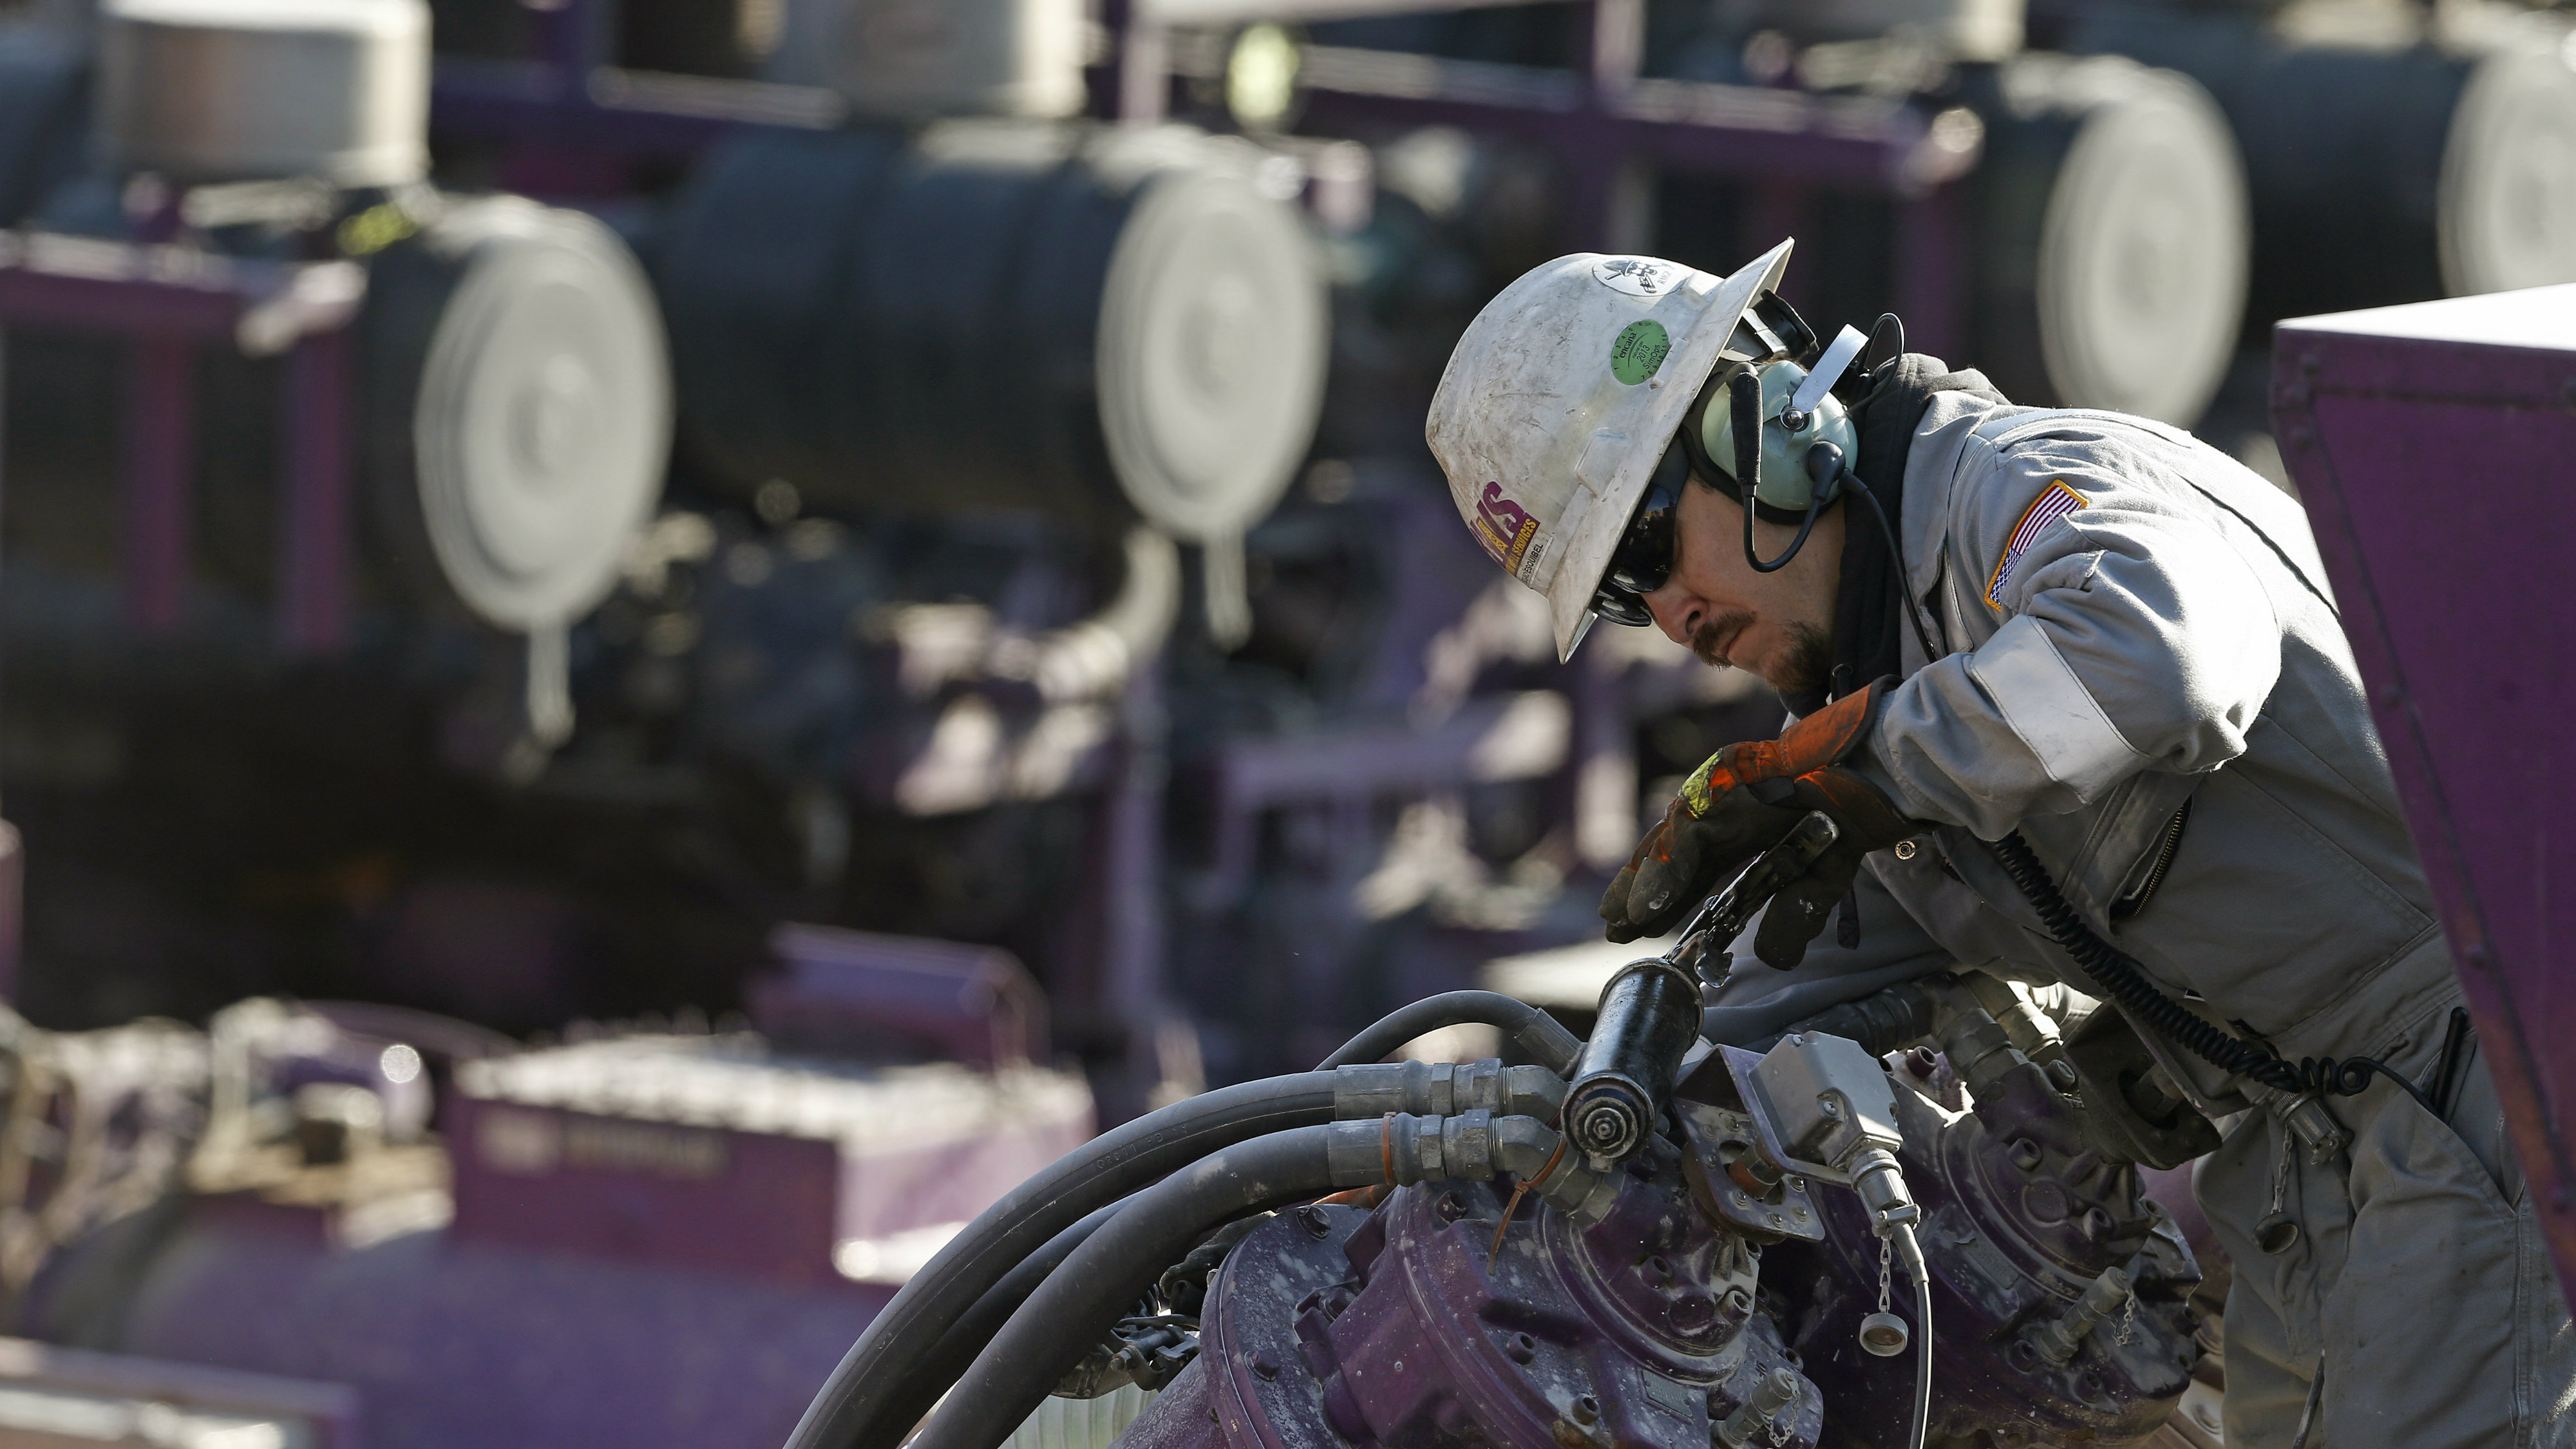 <p>In this March 25, 2014 photo, a worker oils a pump during a hydraulic fracturing operation at an Encana Corp. well pad near Mead, Colo. The National Petroleum Council estimates that up to 80 percent of natural oil wells drilled in the next decade will require hydraulic fracturing.</p>